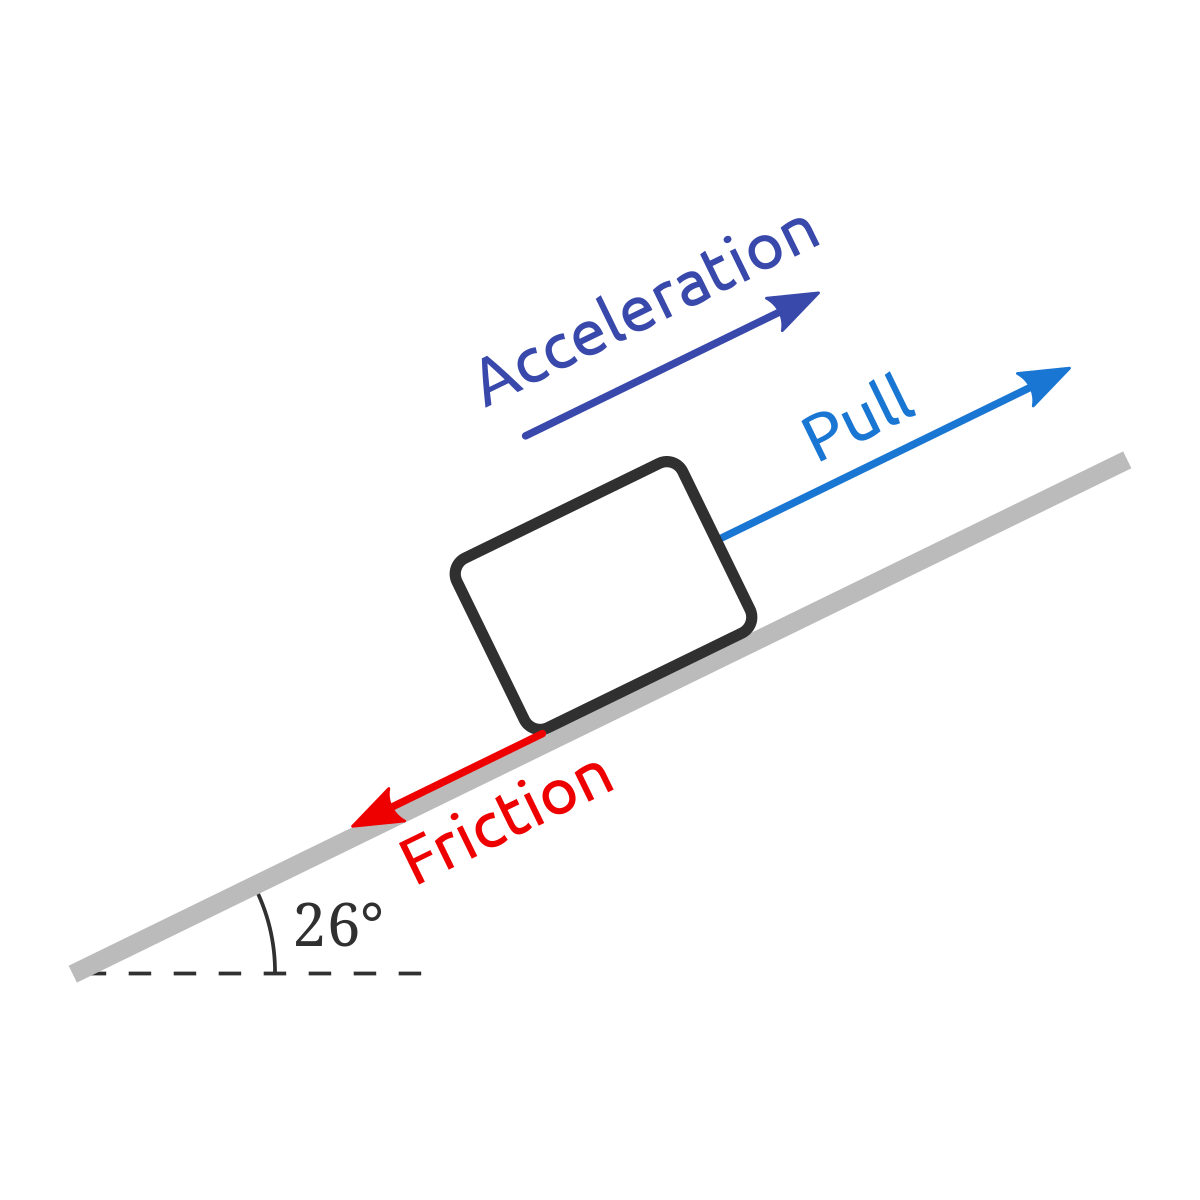 Problem Mass Pulled Up An Incline With Friction